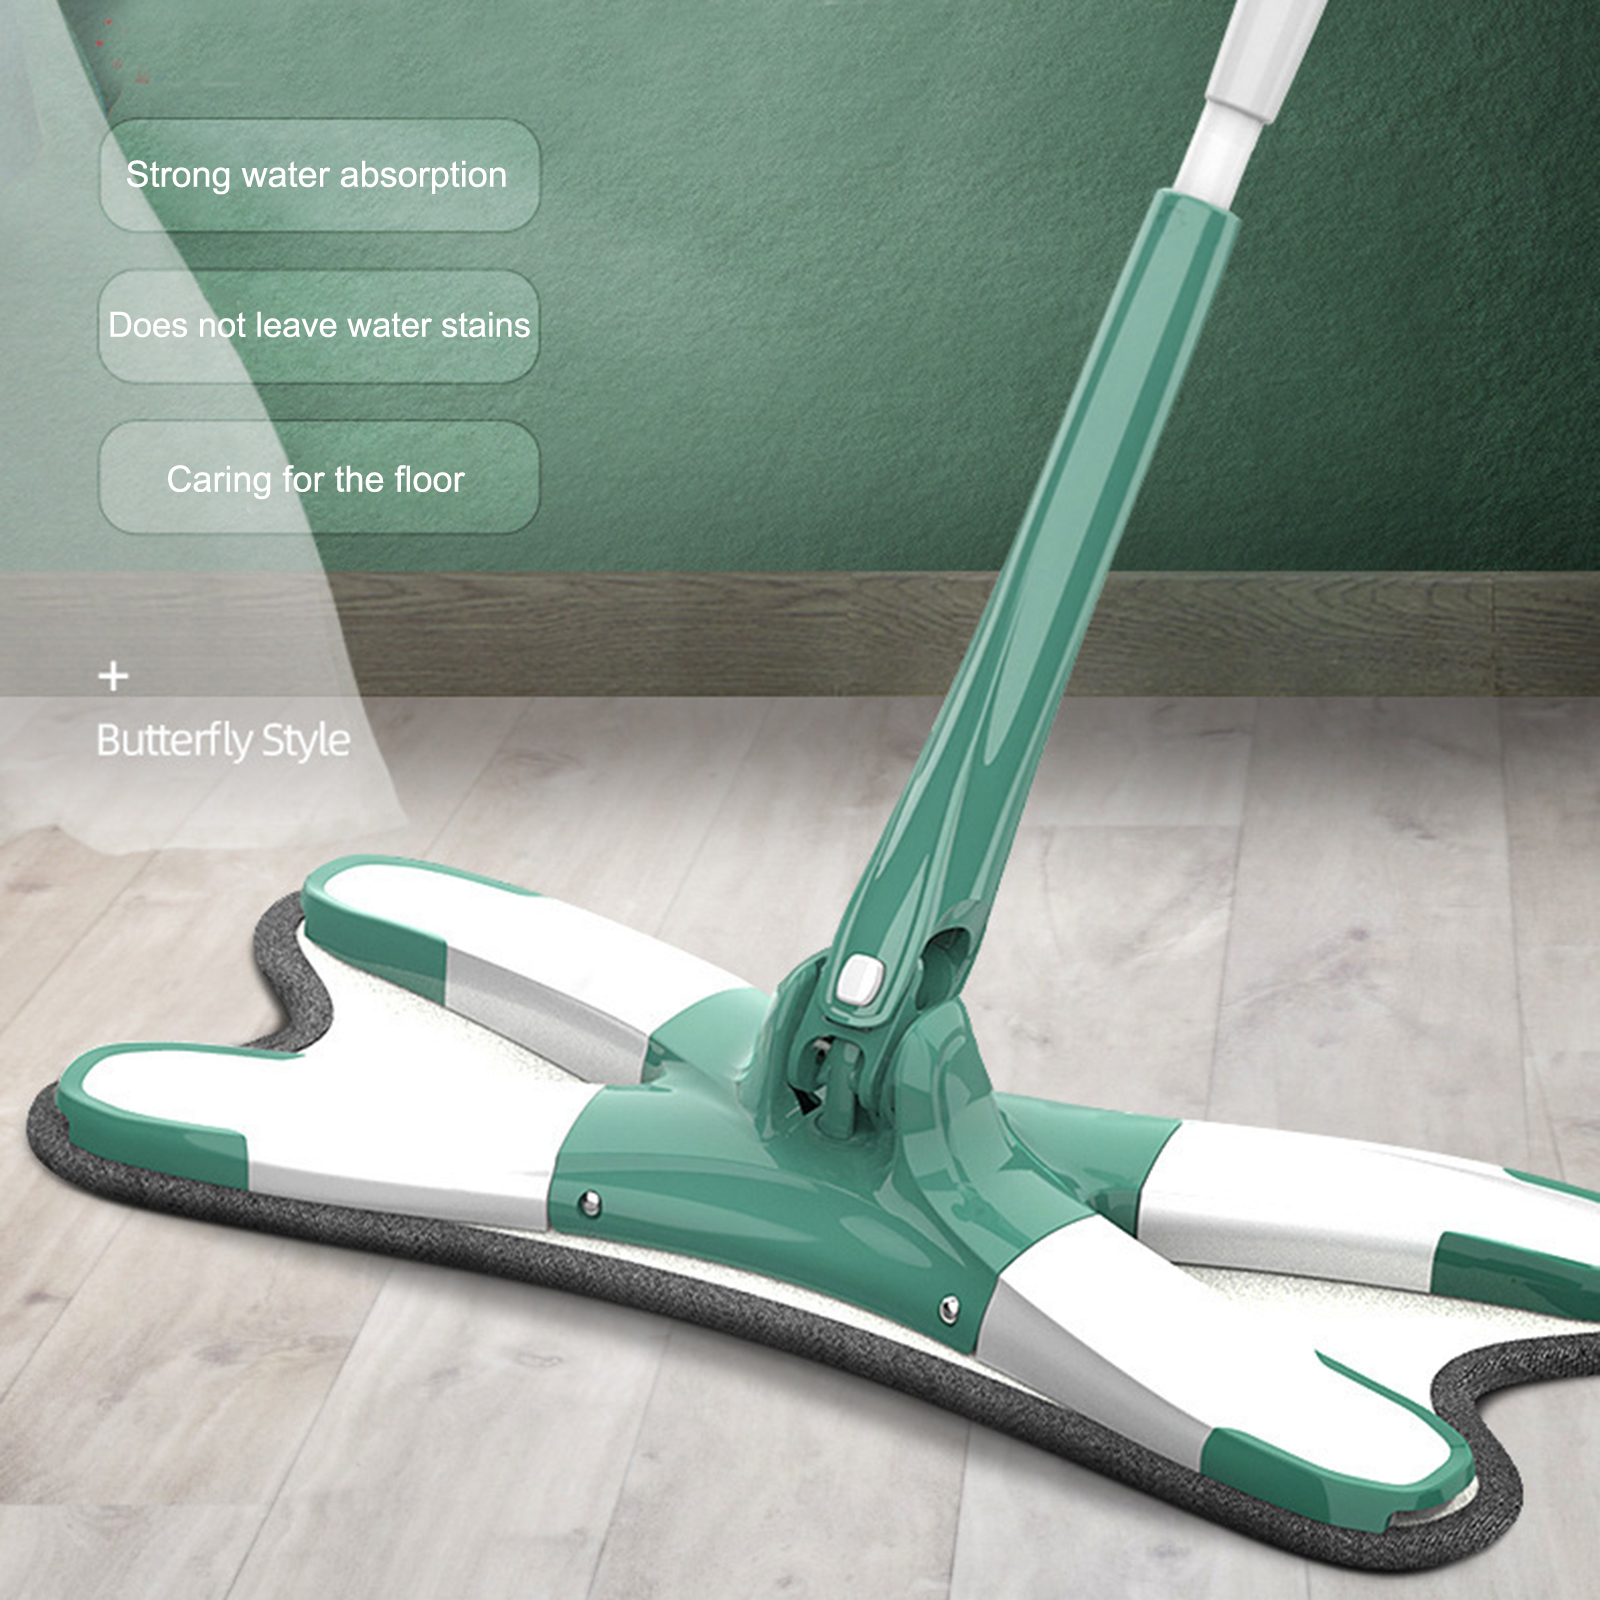 X-type Microfiber Floor Mop Mop Cloth Replace Hand-free Wash Flat Mop Manual Extrusion Household Cleaning Tools Attractive Designs;